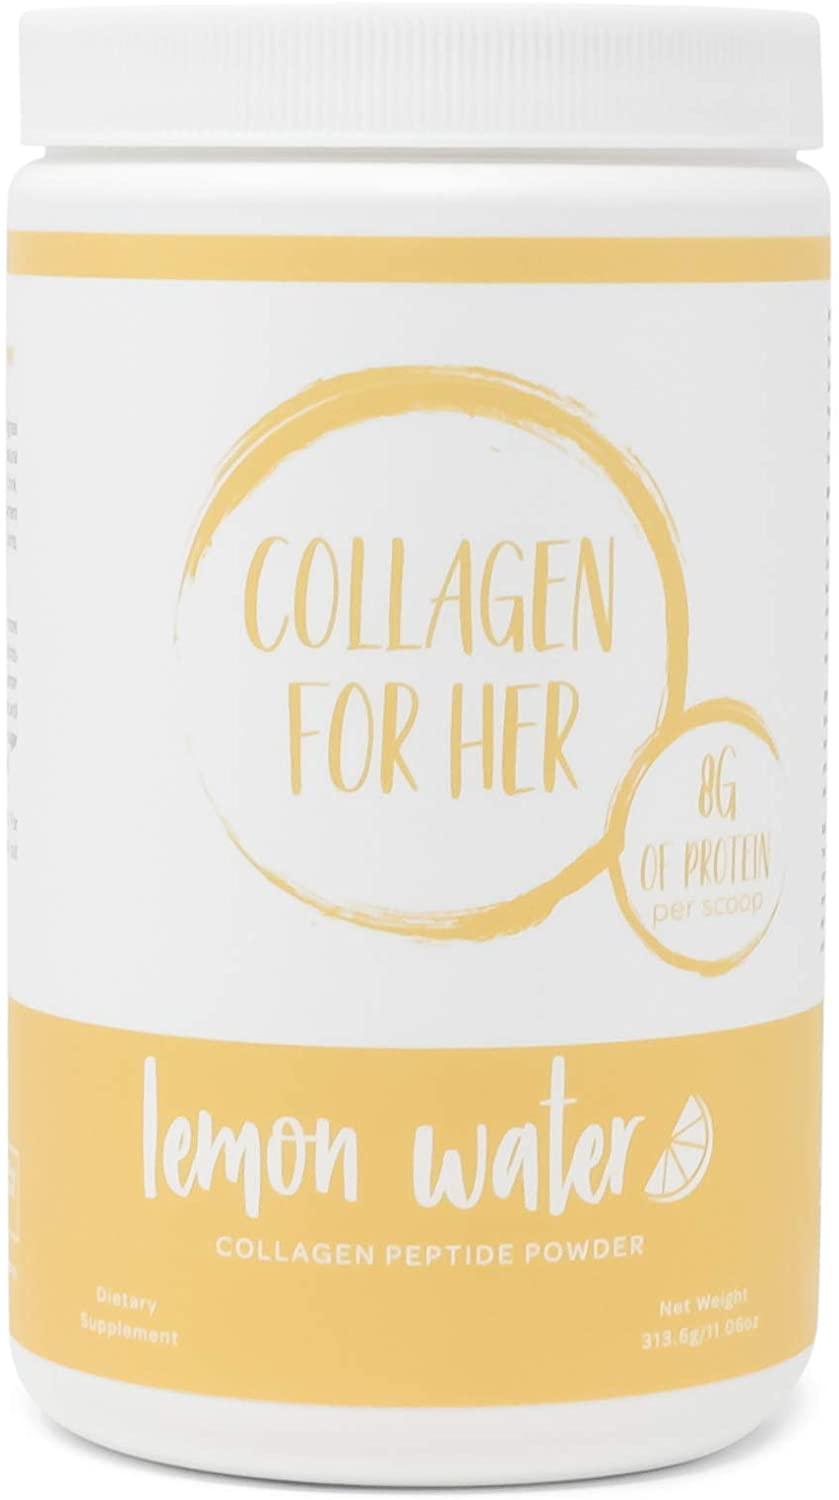 Collagen For Her: Collagen Lemon Water - Hydrolyzed Collagen Peptide Powder with Vitamin C and Electrolytes | Sugar Free, Non-GMO, Beauty Supplement for Hair, Skin, Nails, and Joints